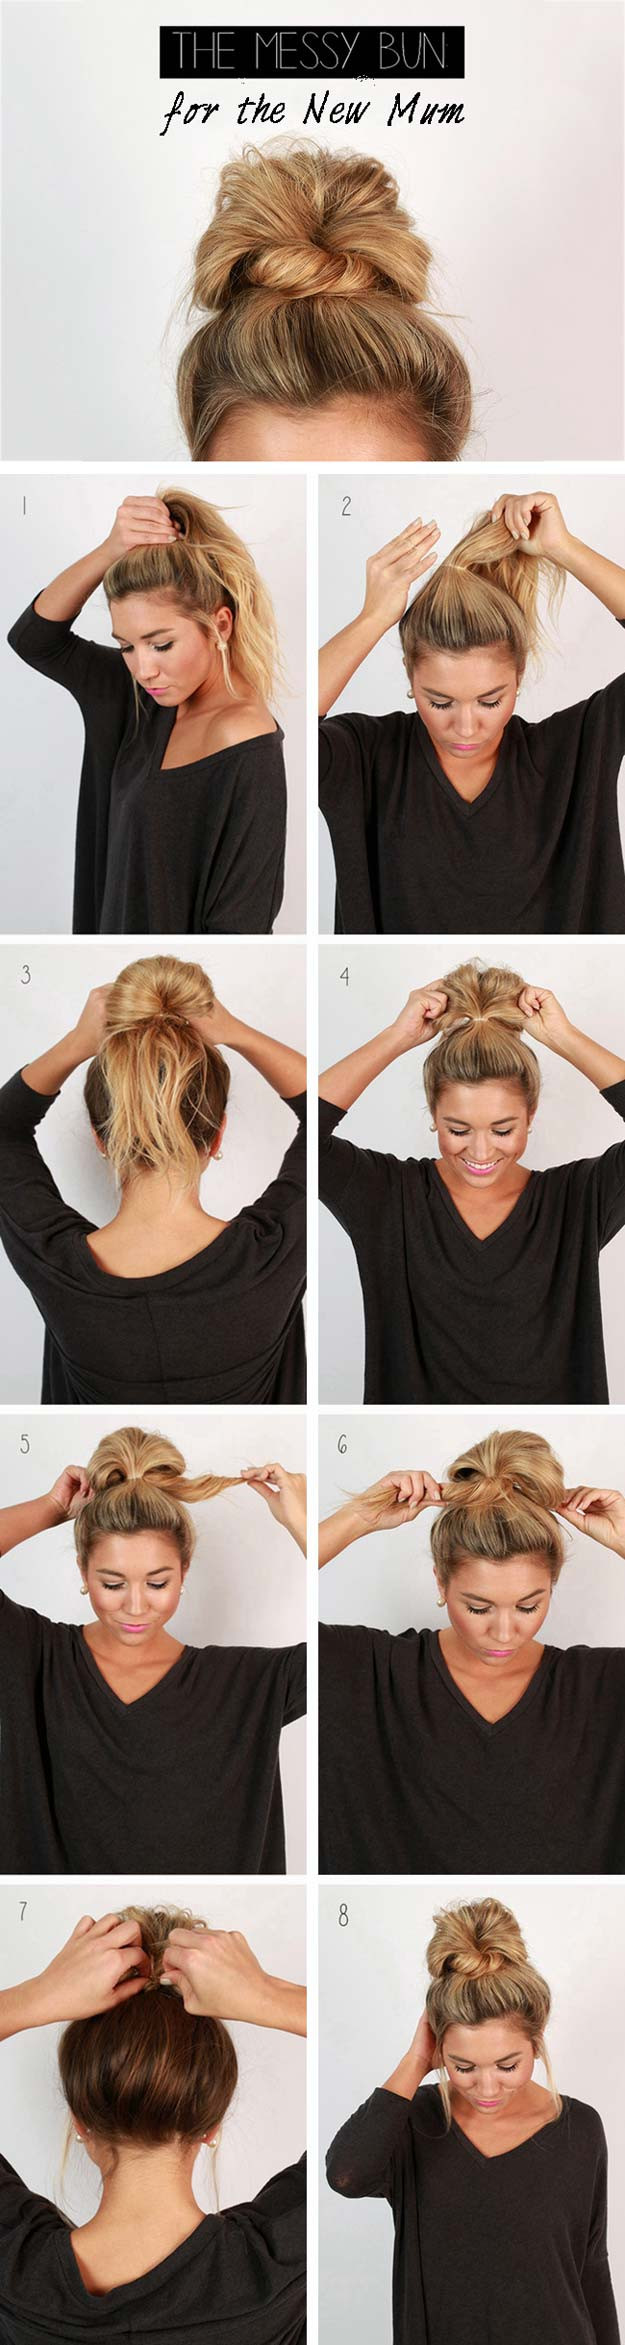 Super Cute And Easy Hairstyles  12 Cute and Easy Hairstyles that Can Be Done in a Few